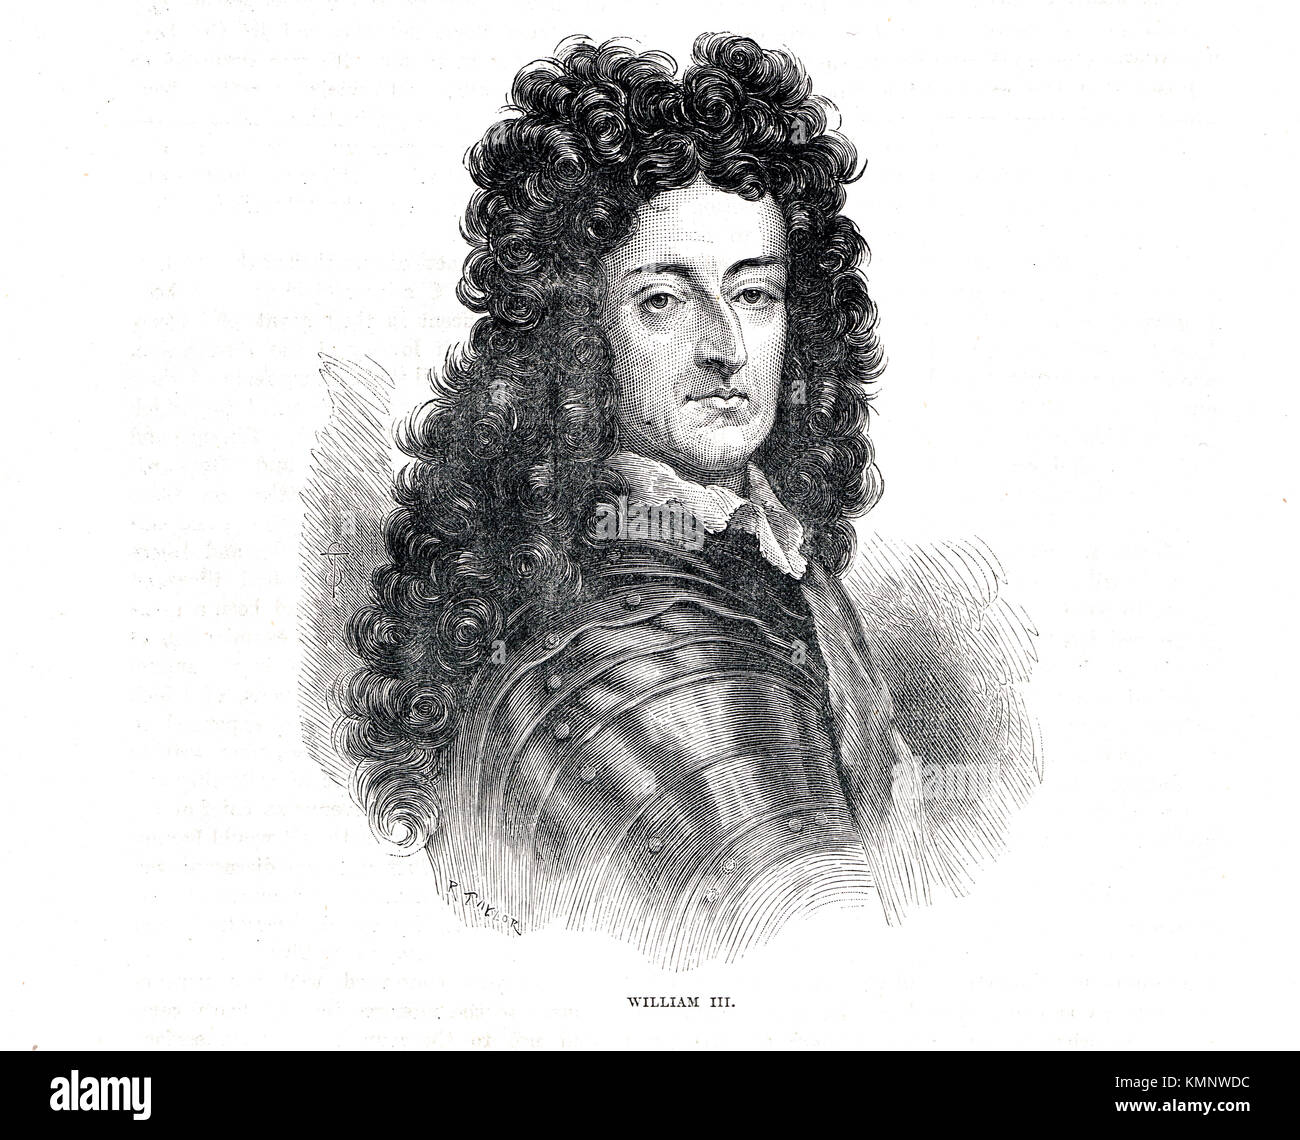 King William III of England (1650-1702) reigned 1689-1702 - Stock Image